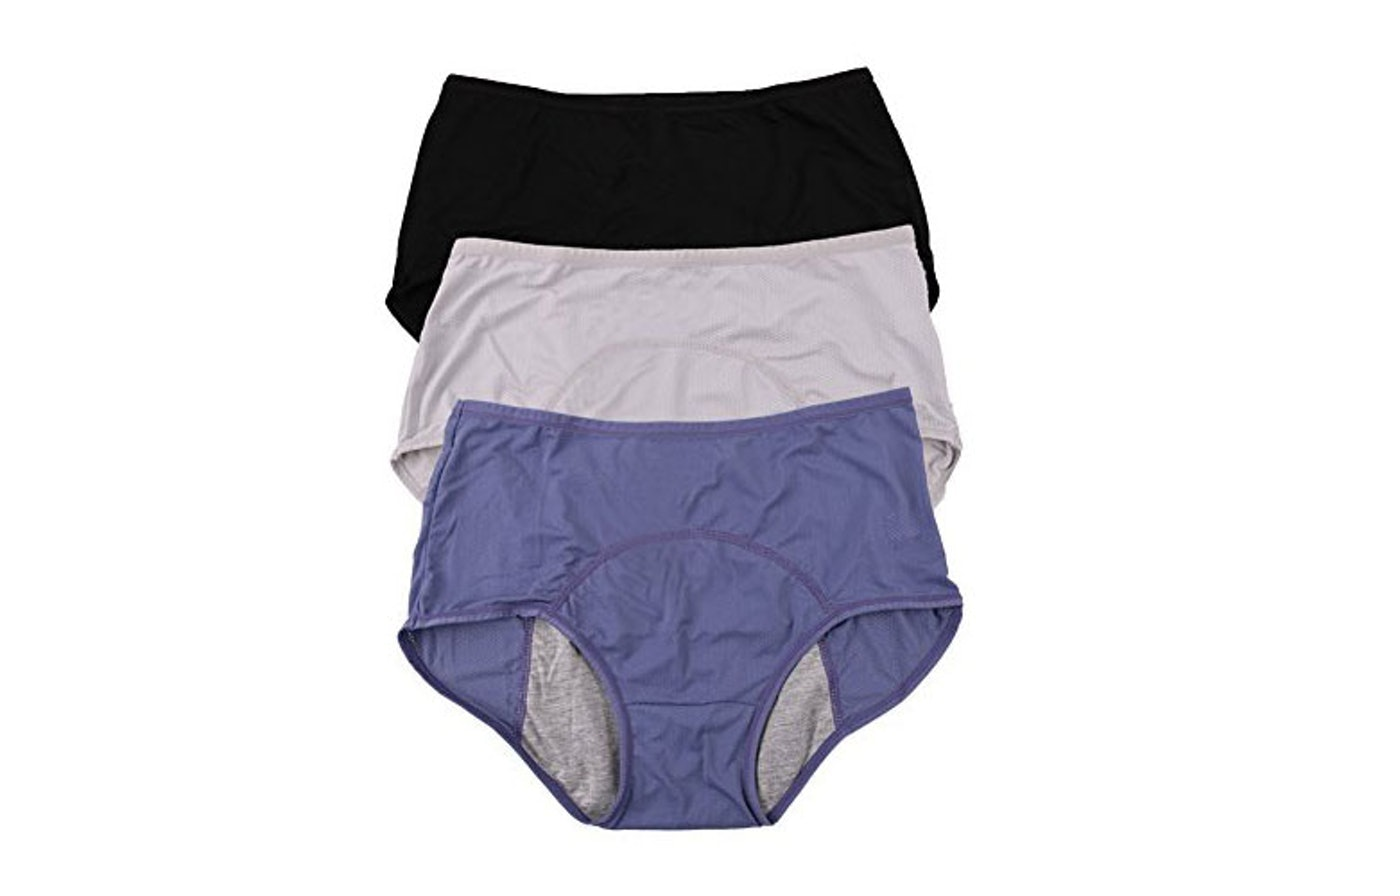 605b3e84e222 The 8 Most Comfortable Pairs Of Underwear For Women